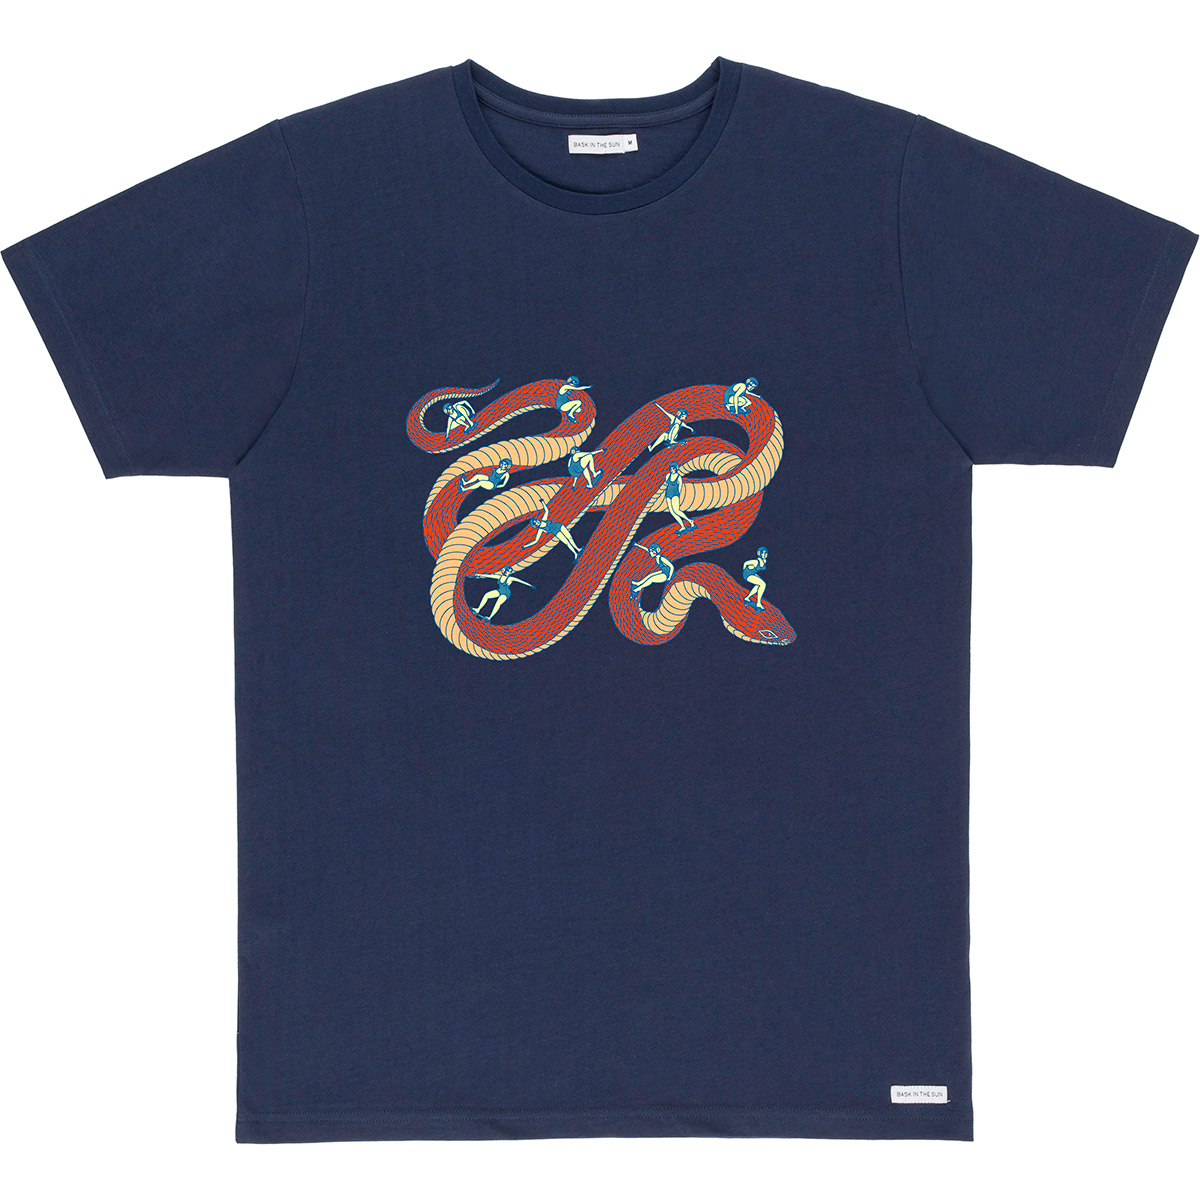 Bask in the Sun - T-shirt en coton bio navy snakepark